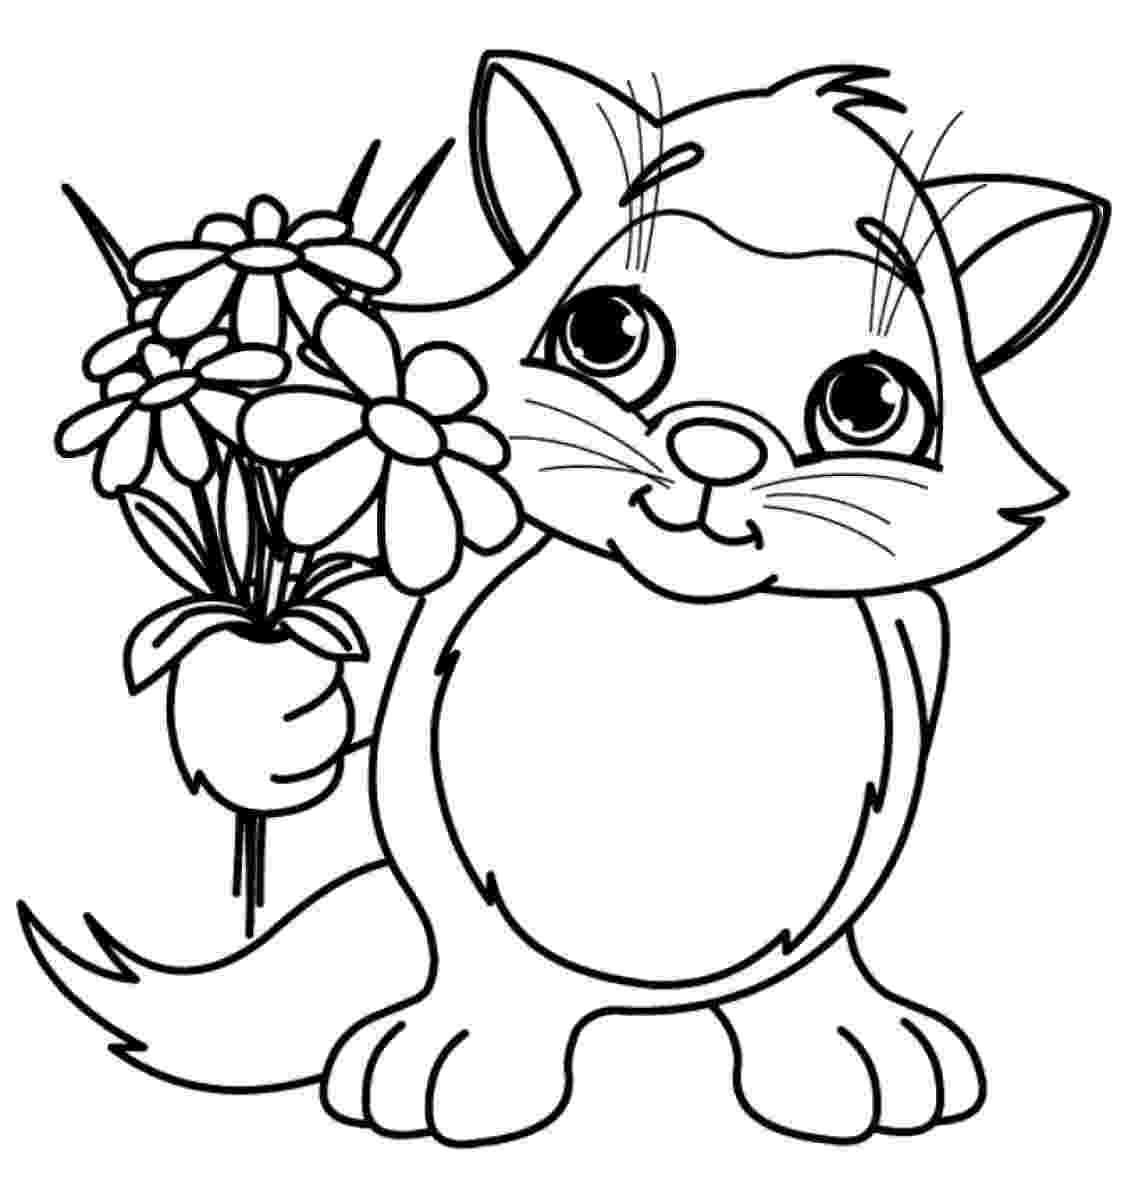 printable flower coloring pages free printable flower coloring pages for kids cool2bkids pages coloring printable flower